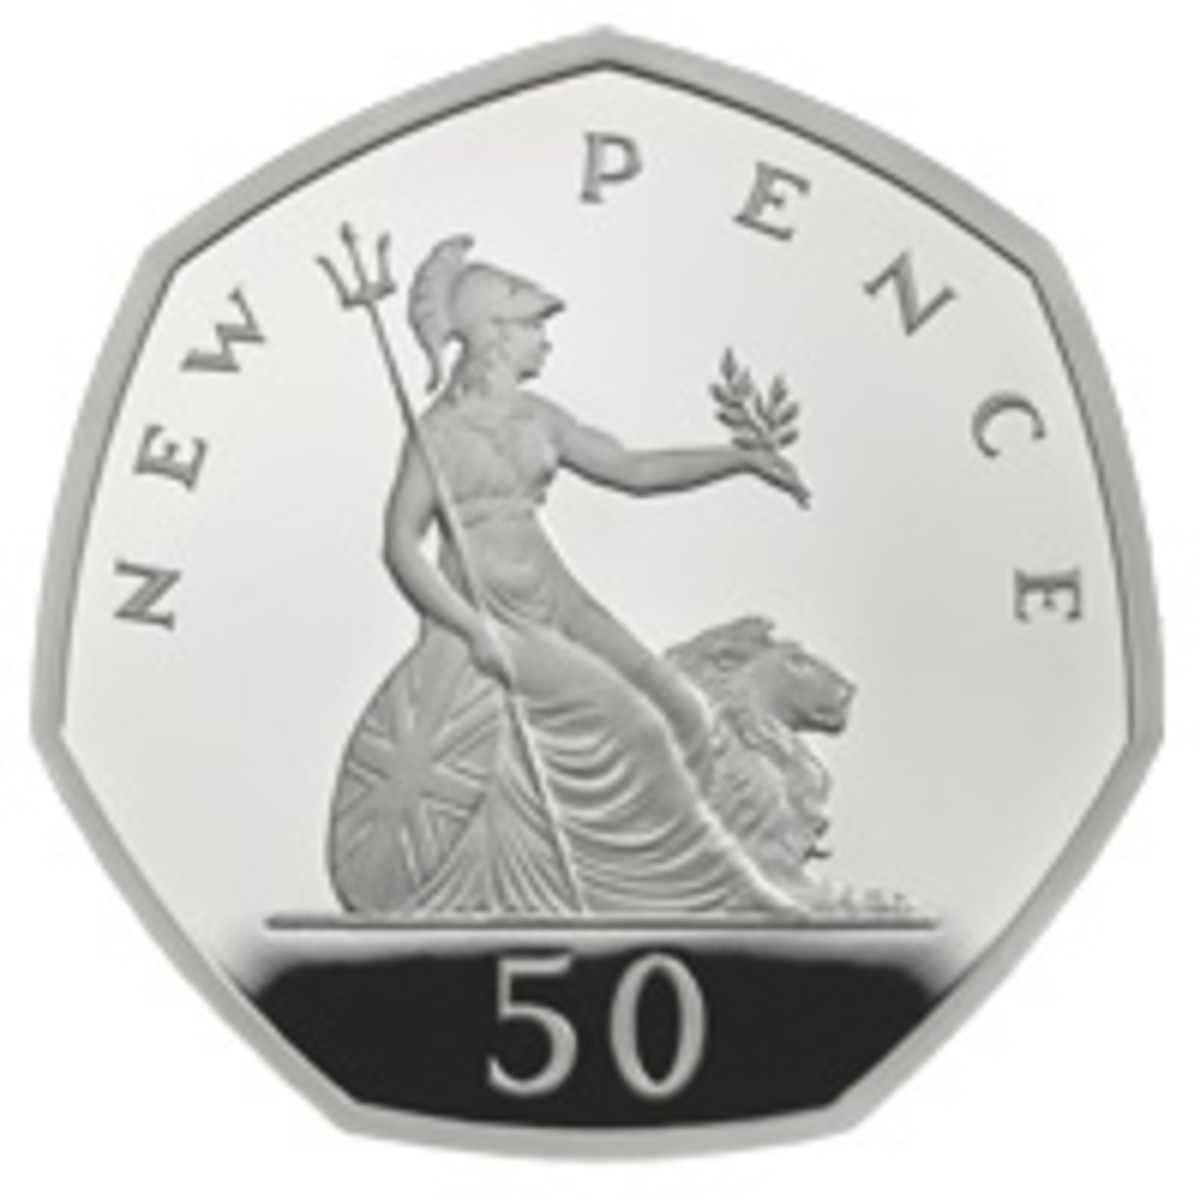 (Image courtesy & © The Royal Mint)